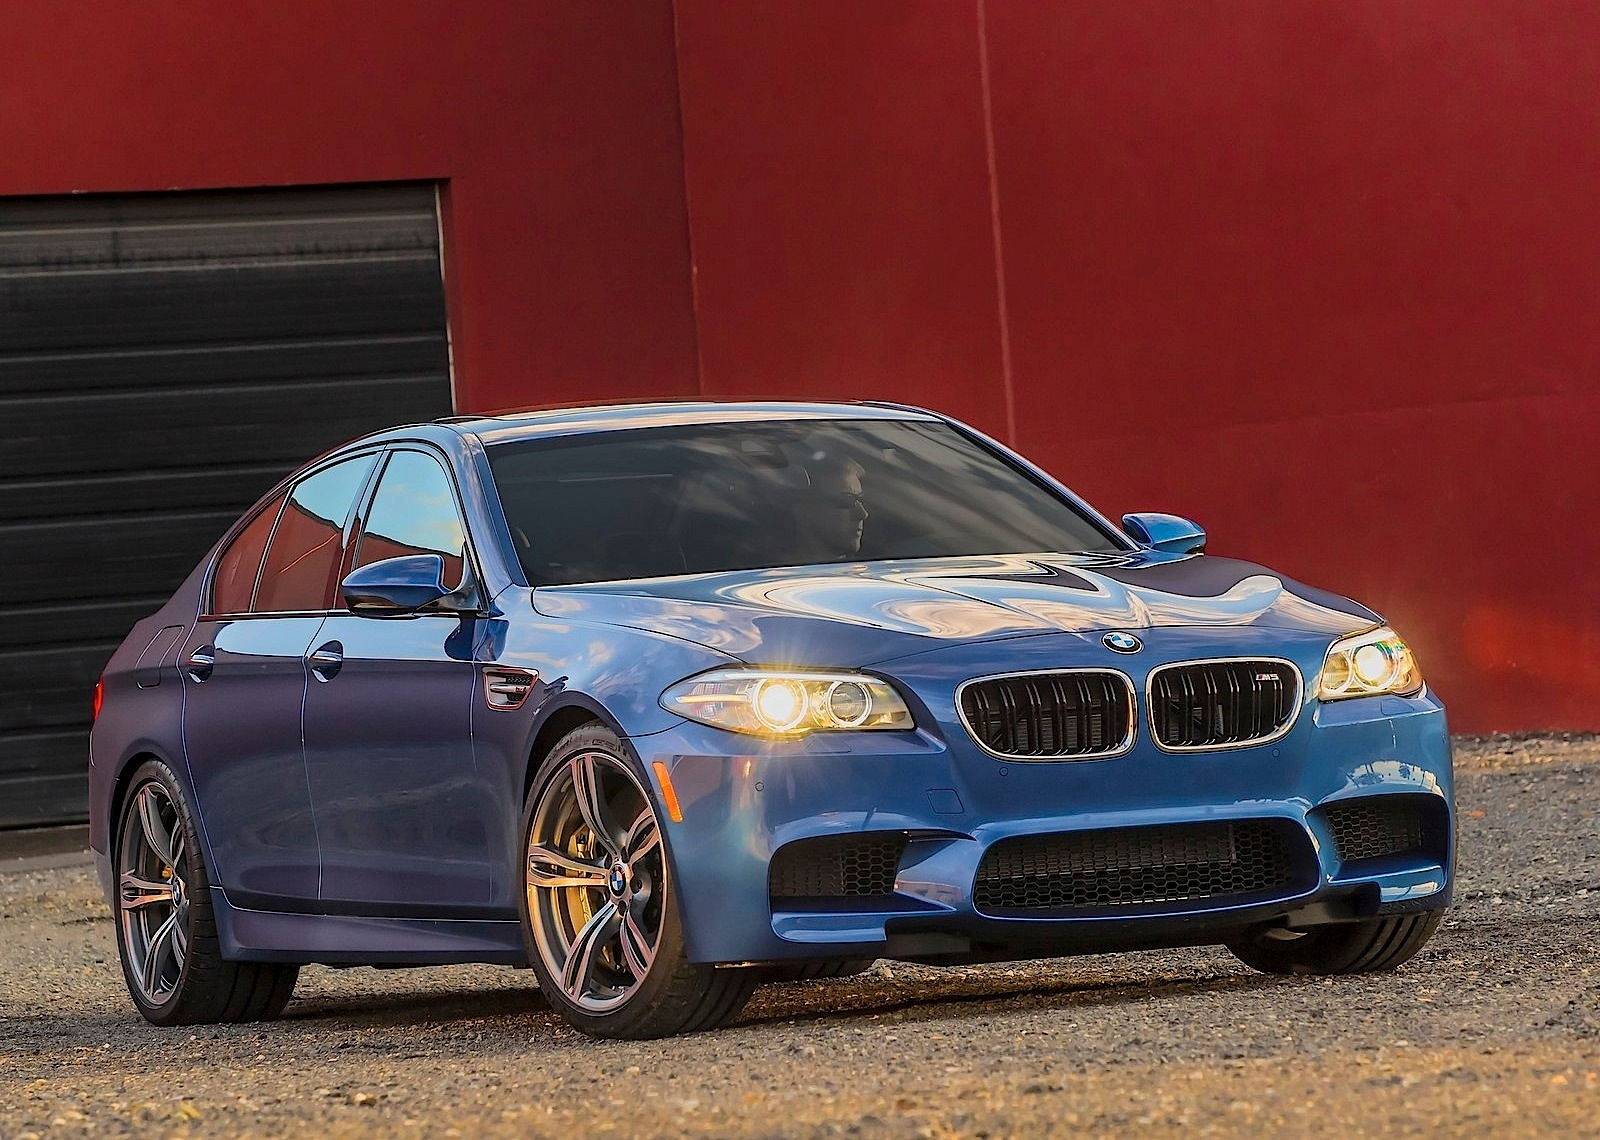 Bmw M5 F10 Lci Specs Photos 2013 2014 2015 2016 2017 Autoevolution